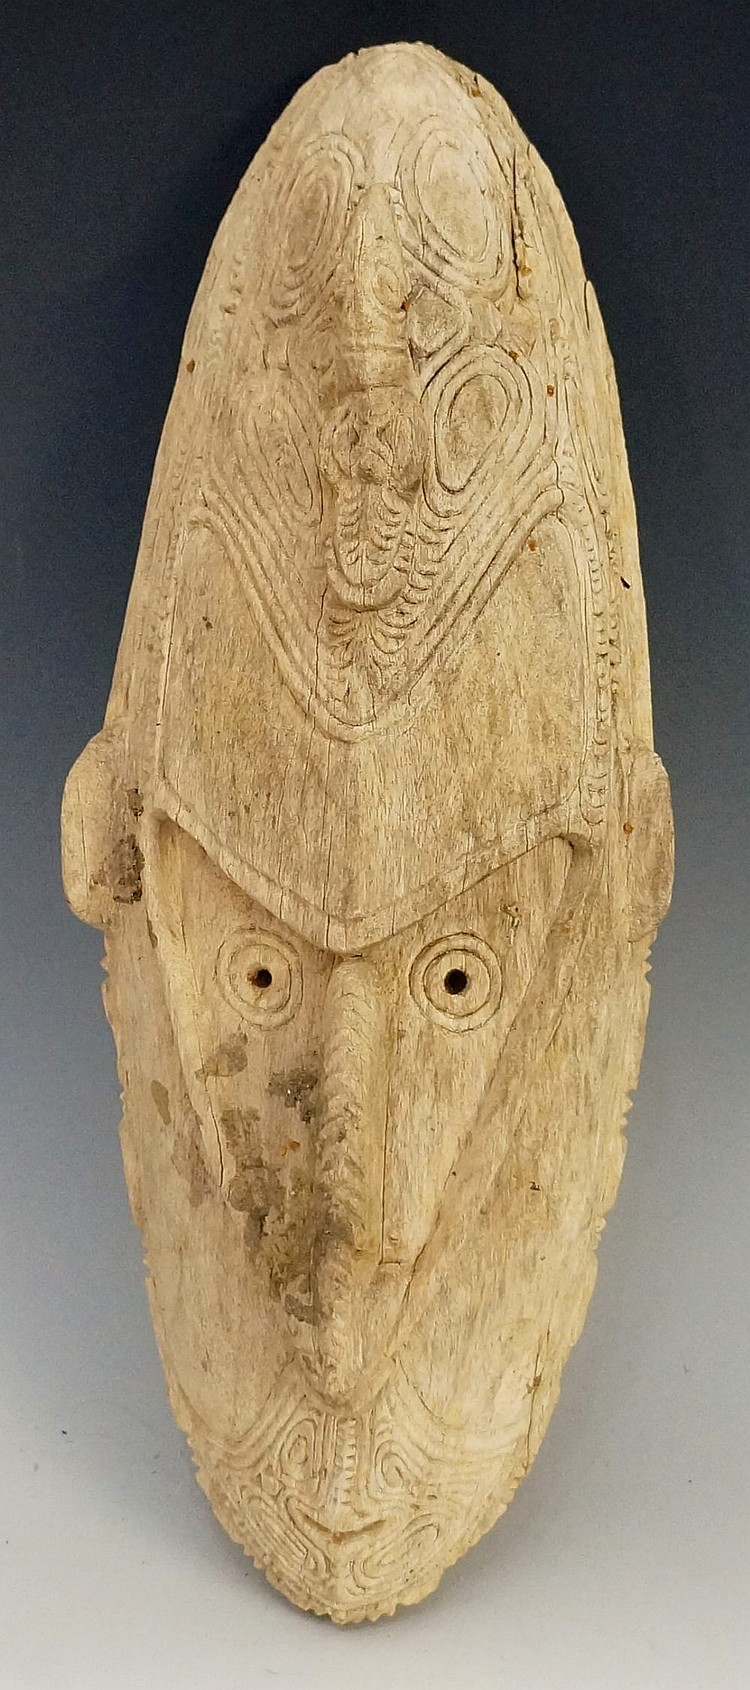 A Papua New Guinea Sepic River mask, 39cm high